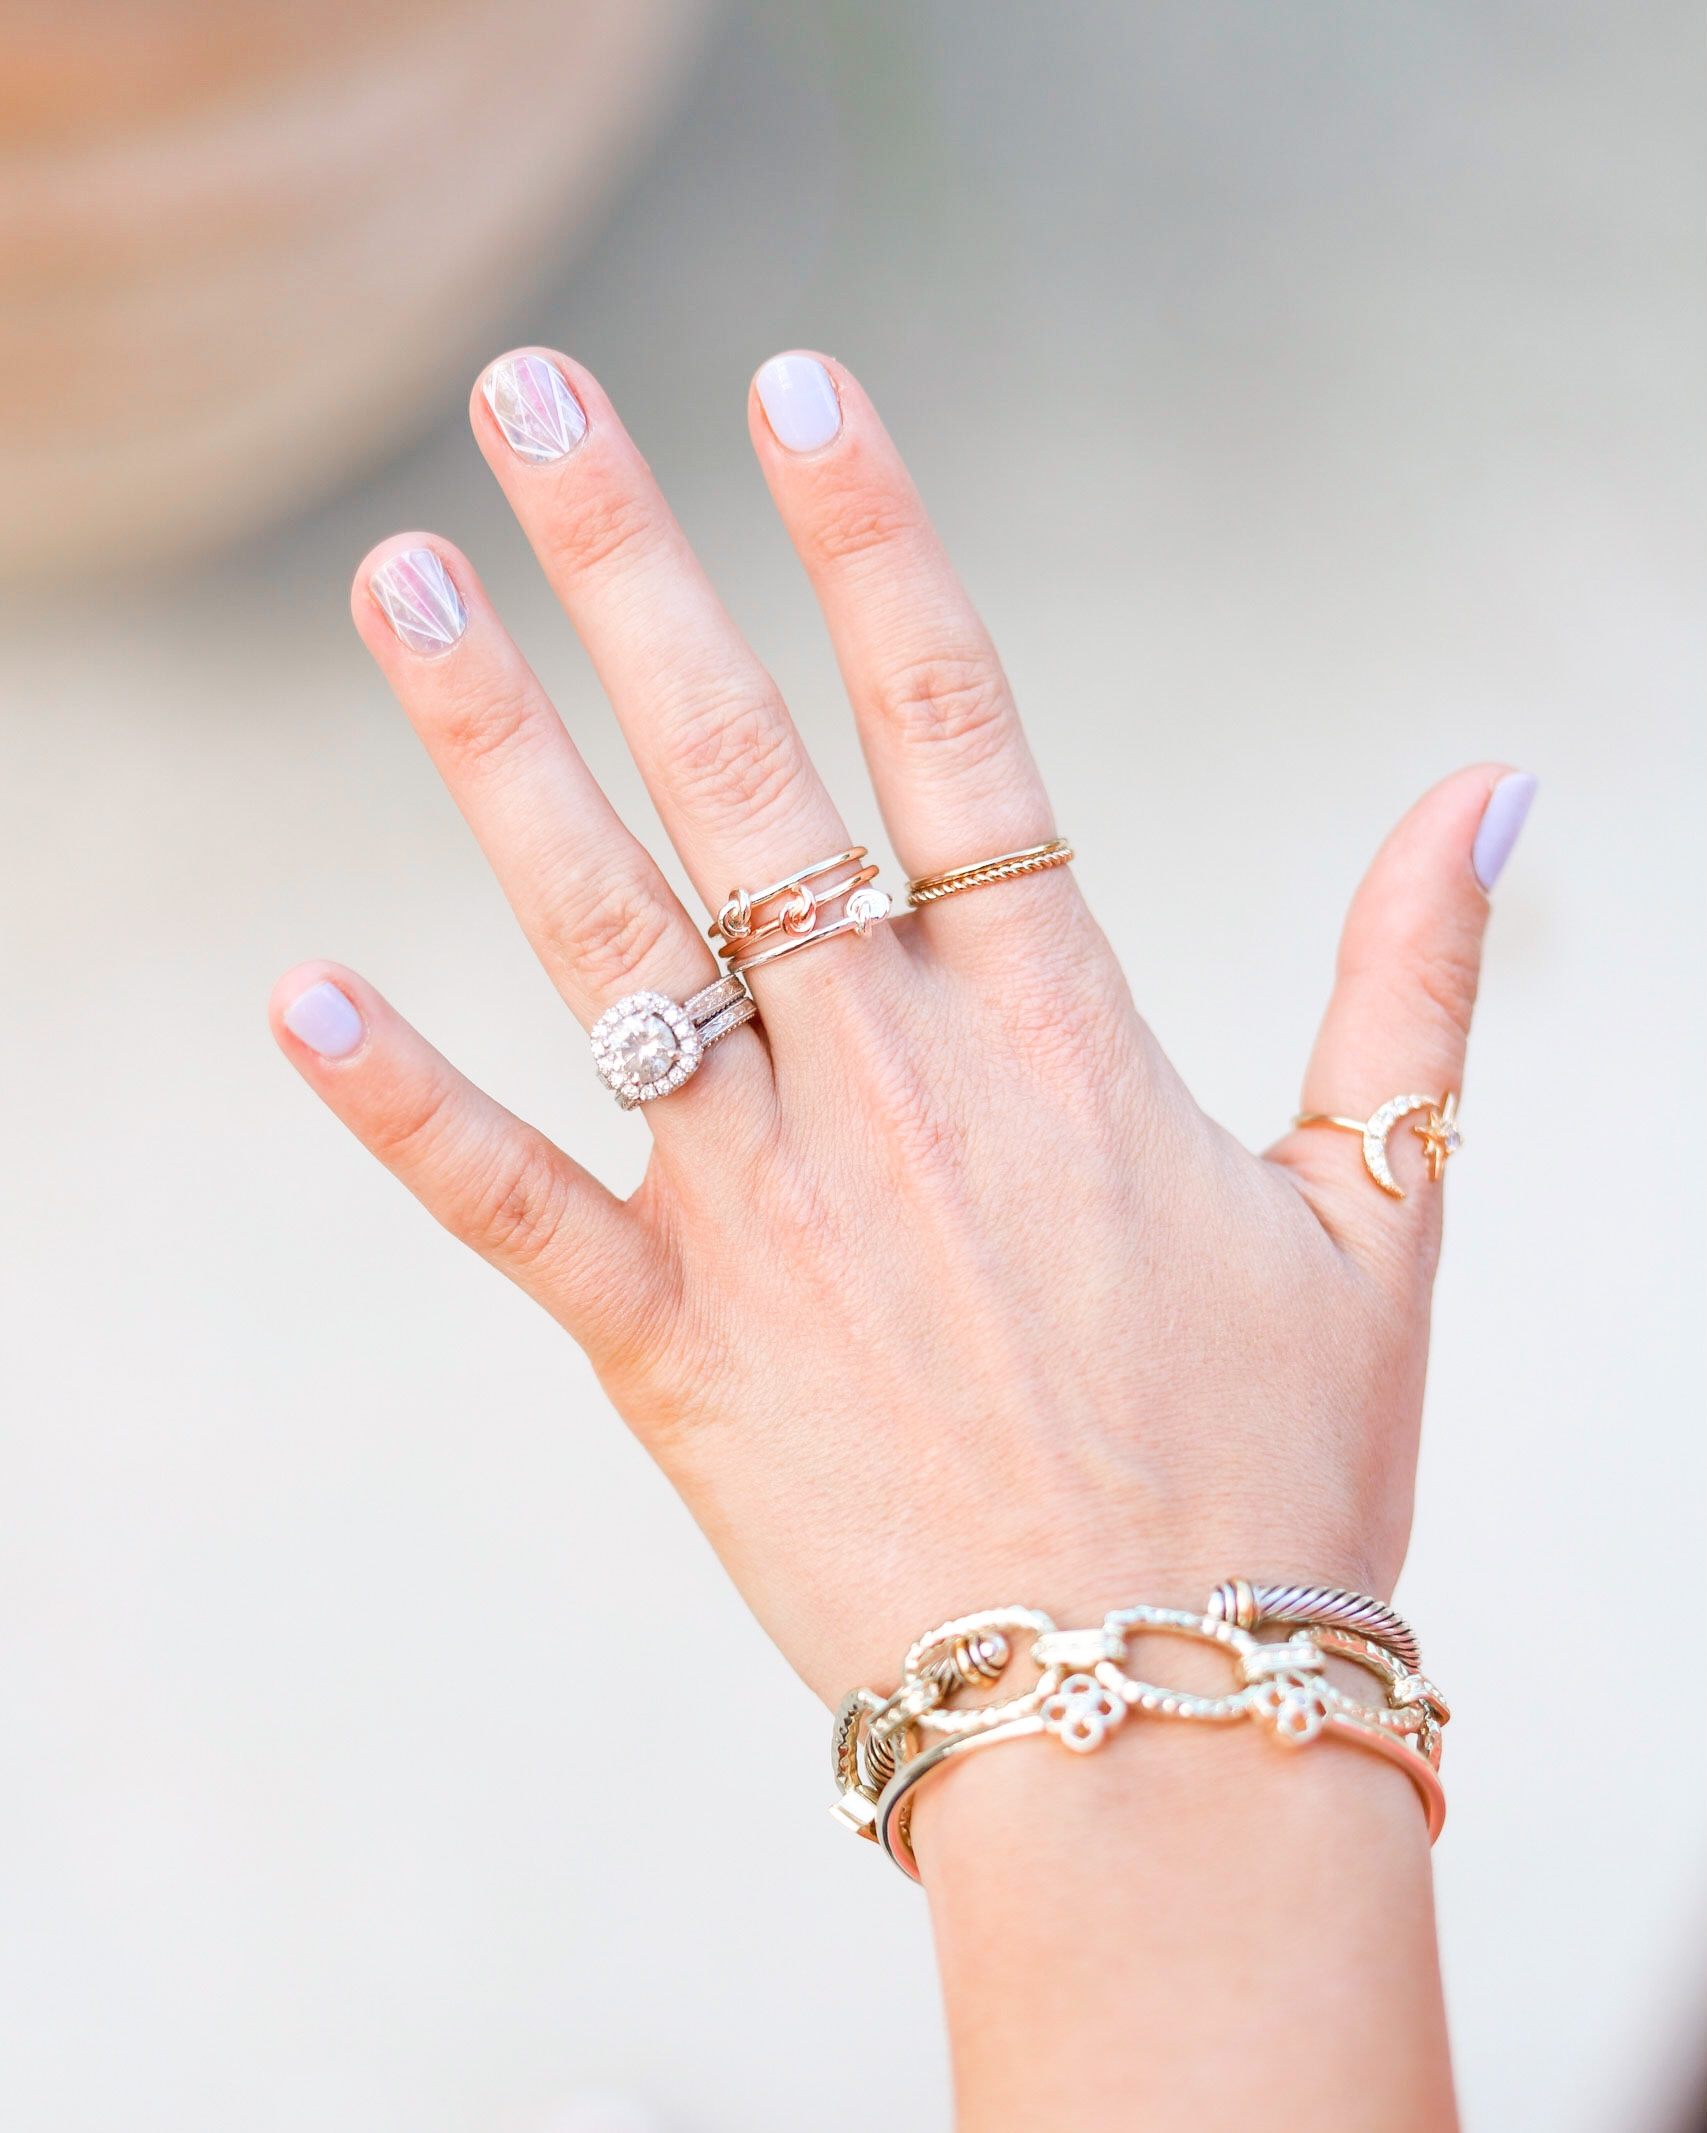 HOW TO LAYER JEWELRY RINGS